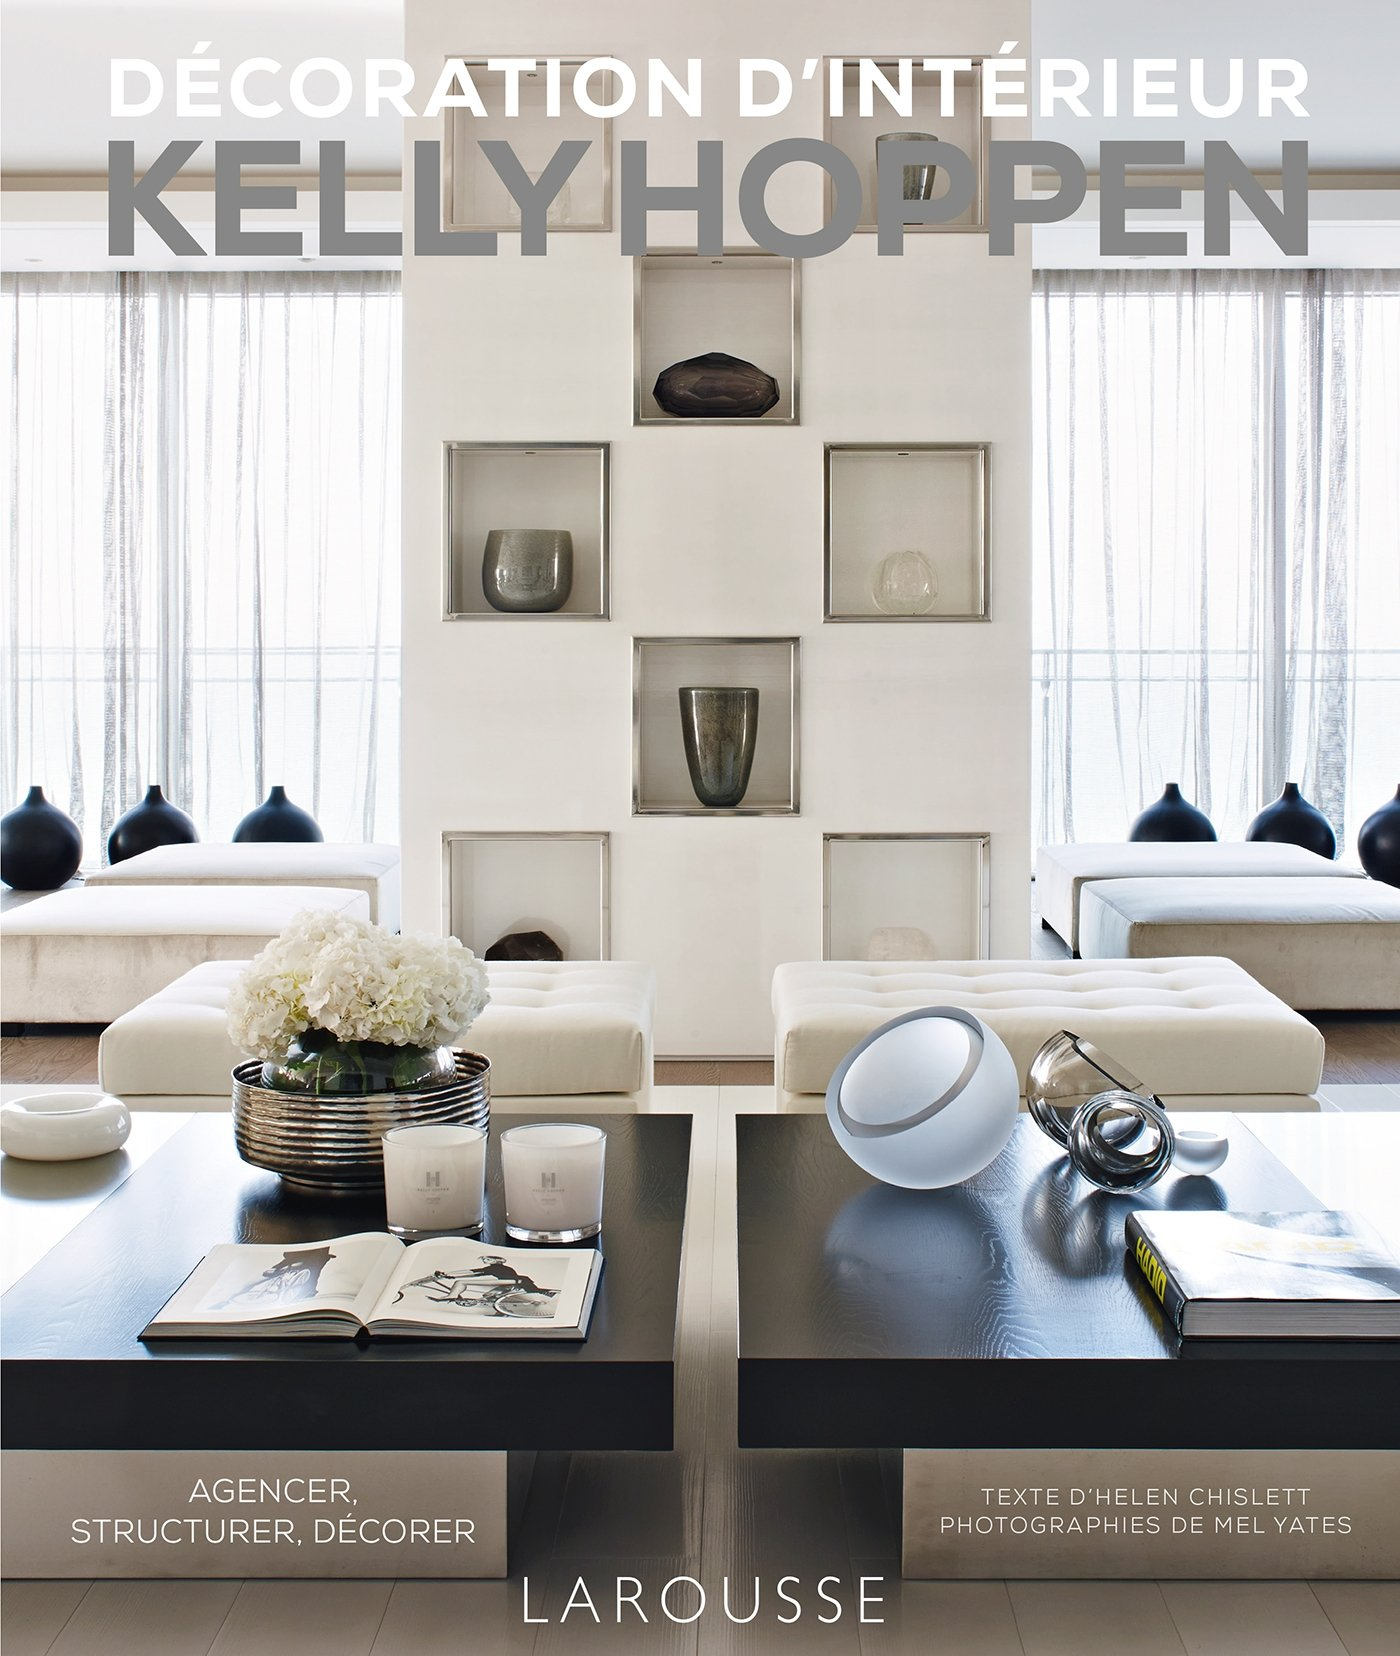 kelly hoppen decoration d interieur